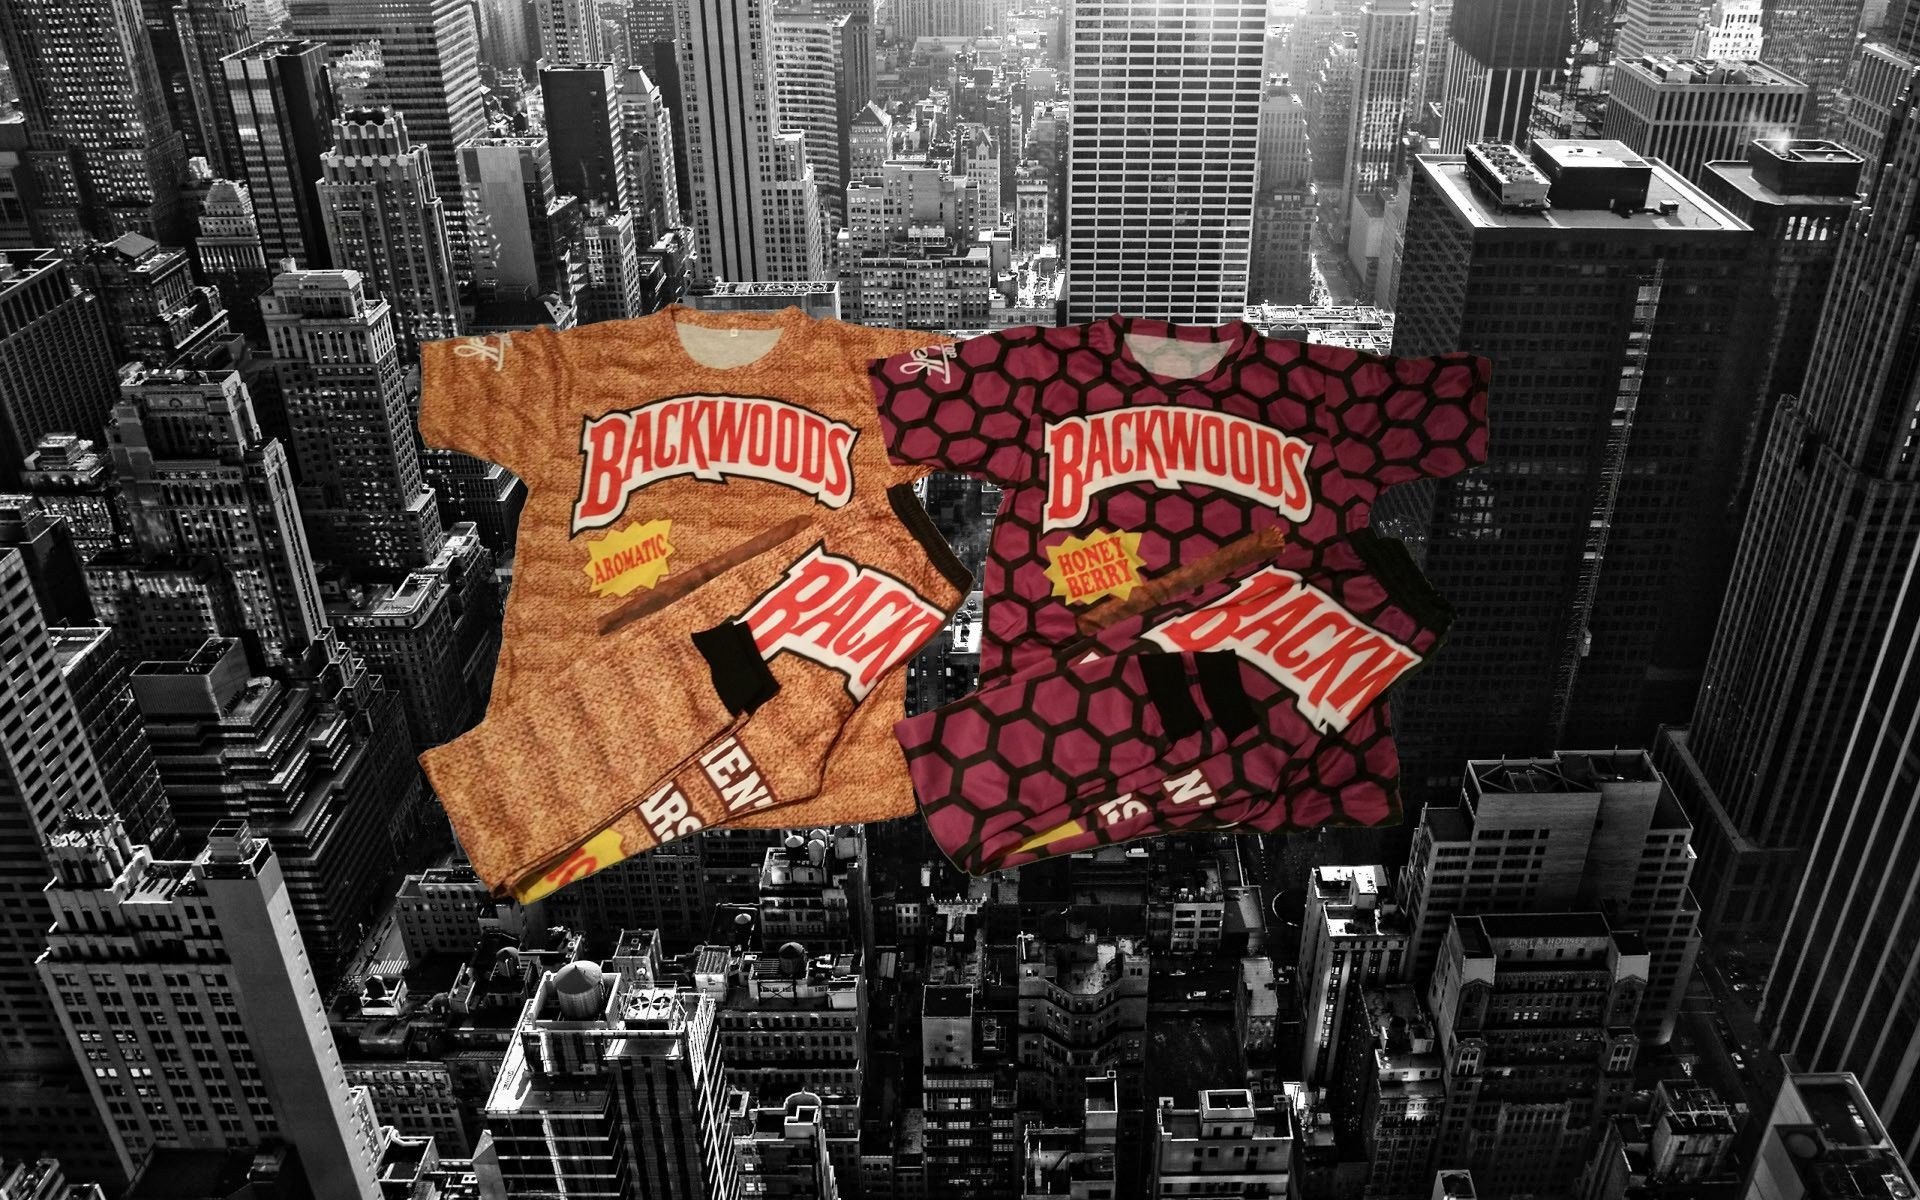 Get your Backwoods gear today Add us on instagram to win free stuff topshelfclothing 420 backwoodsonly hoo joggers